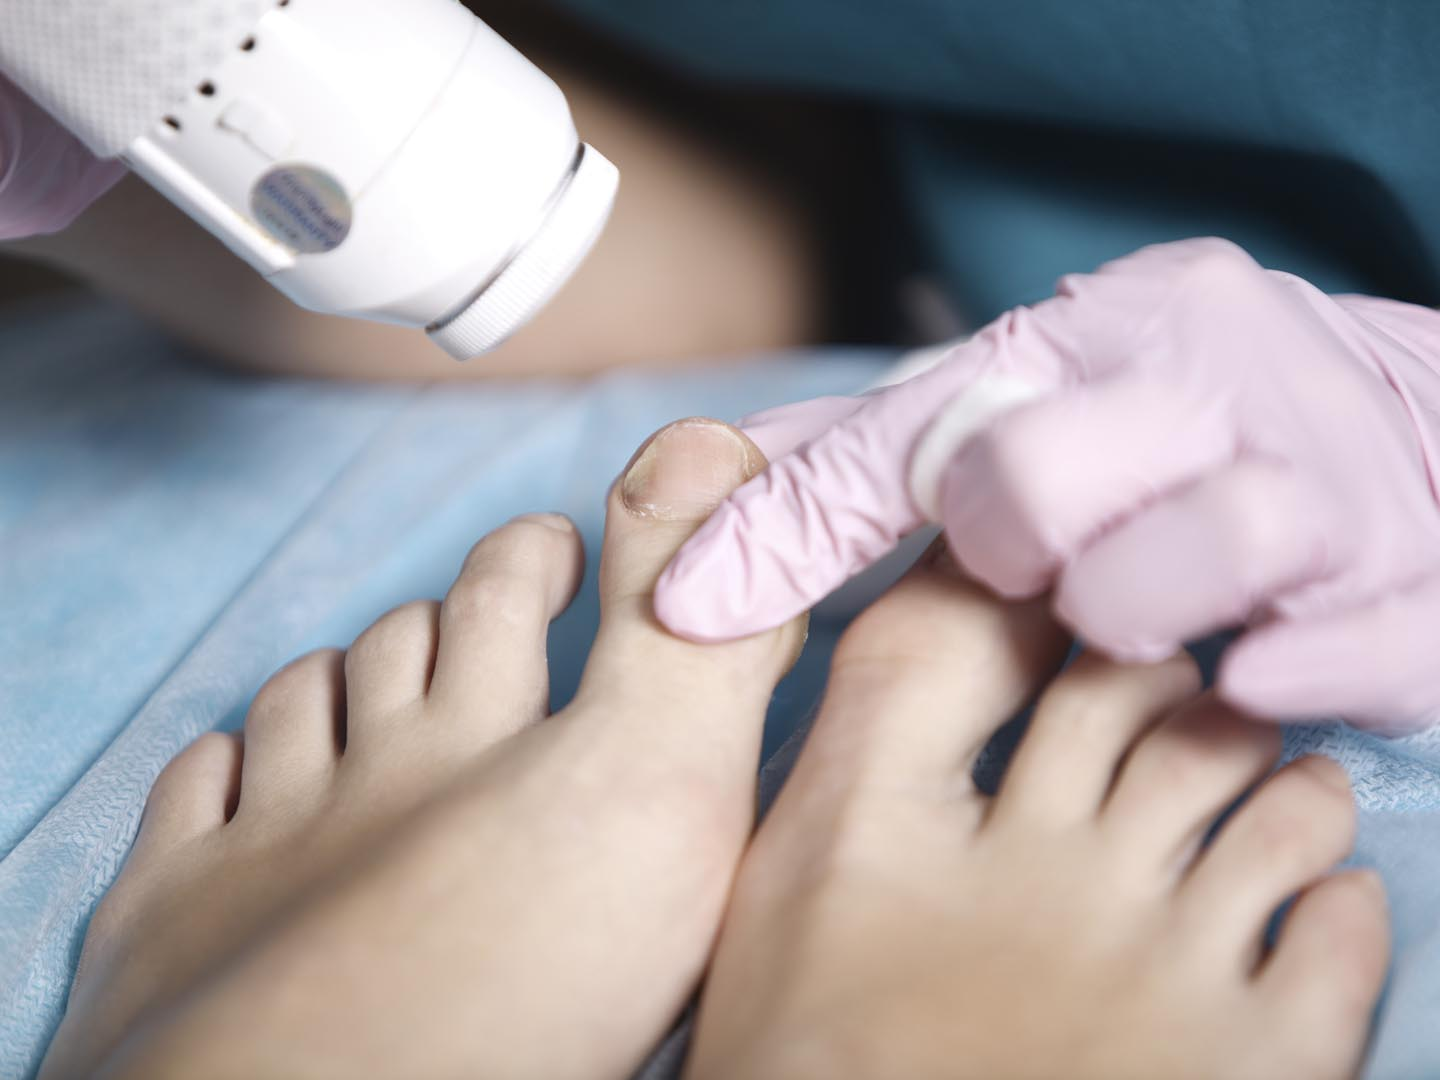 health-wellness_body-mind-spirit_feet_cosmetic-surgery-for-your-feet_2718%C3%971808_32760824.jpg